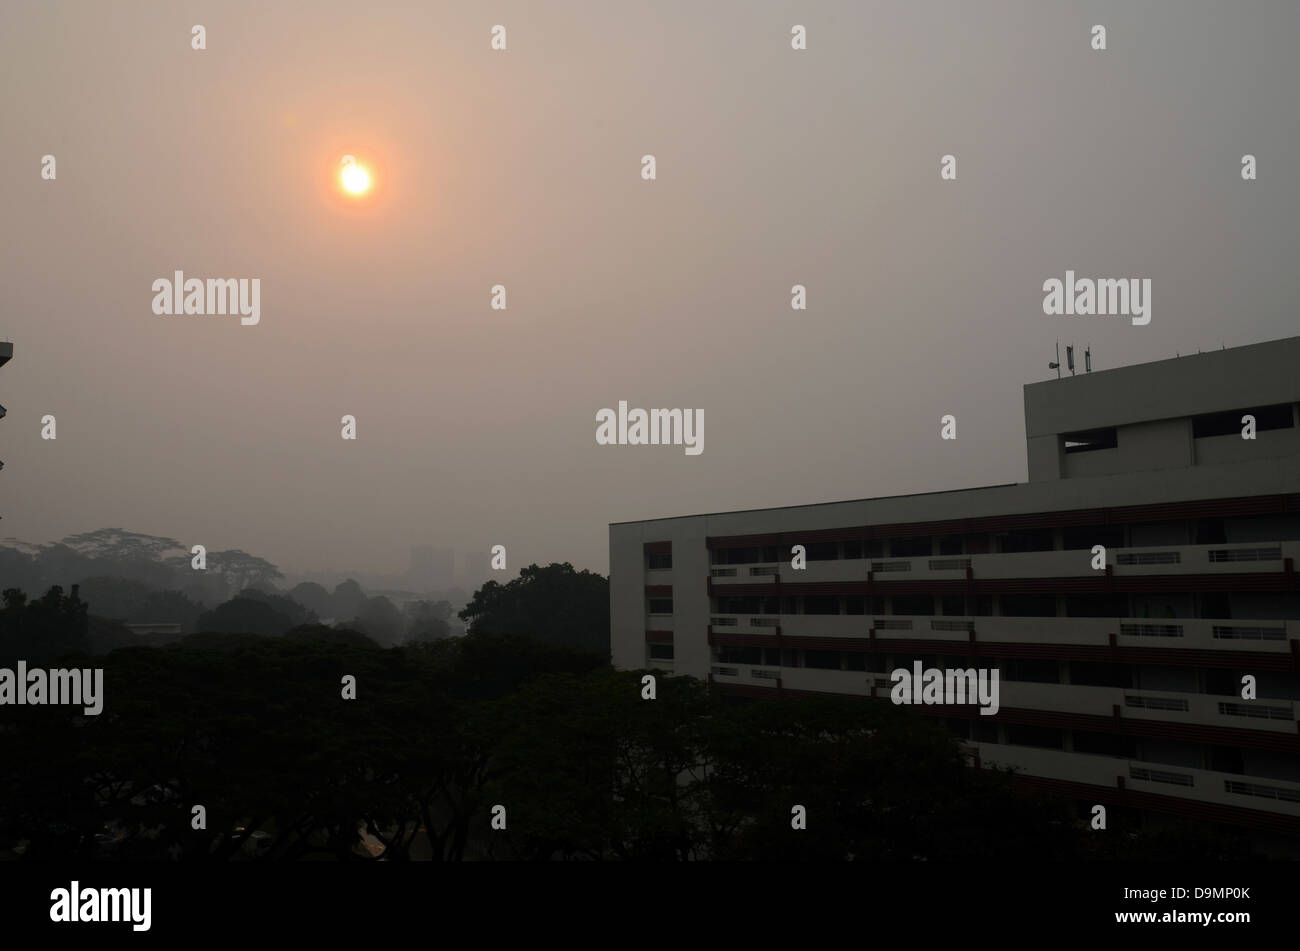 Singapore evening sun clouded by haze pollution - Stock Image